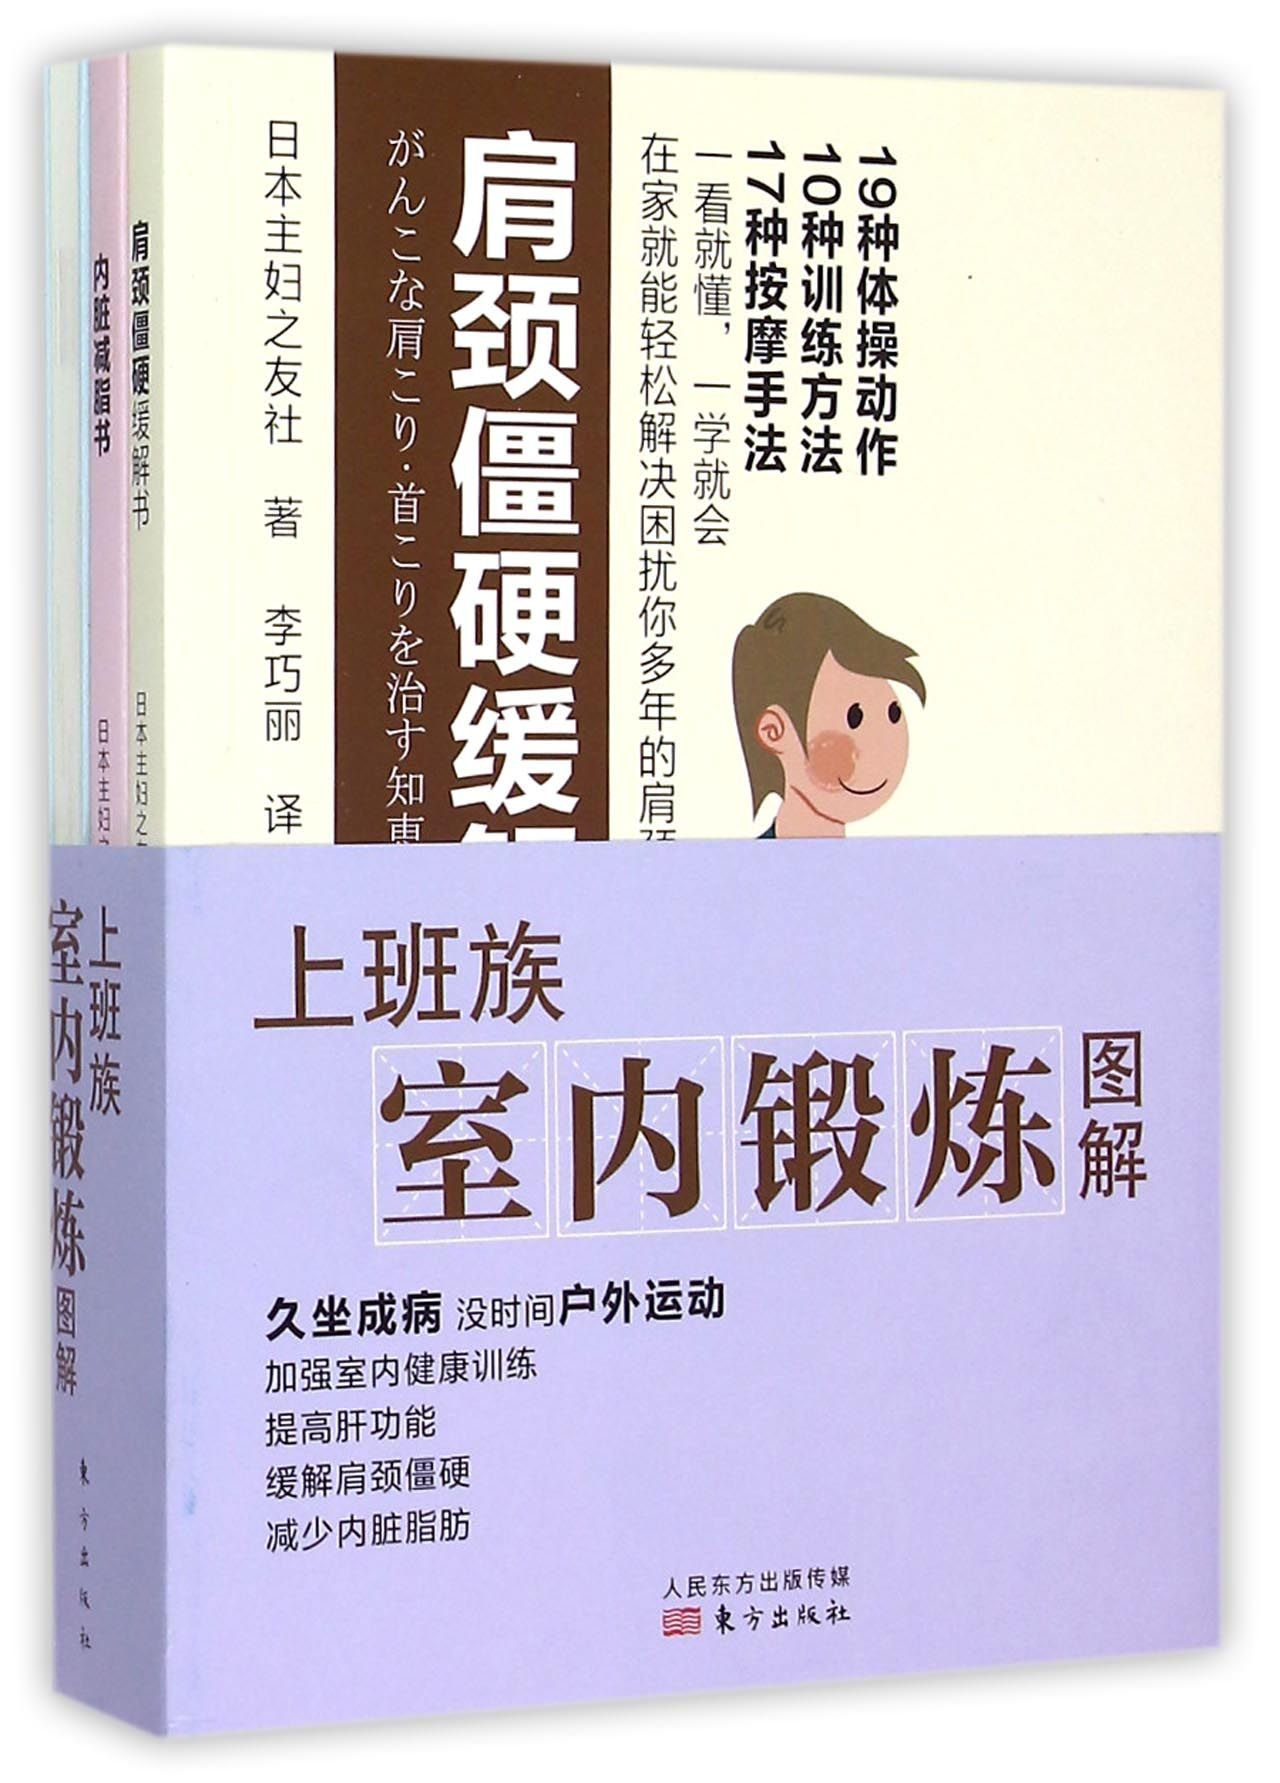 A Graphic Book of Indoor Workout for Office Worker (3 Volumes at Total) (Chinese Edition) pdf